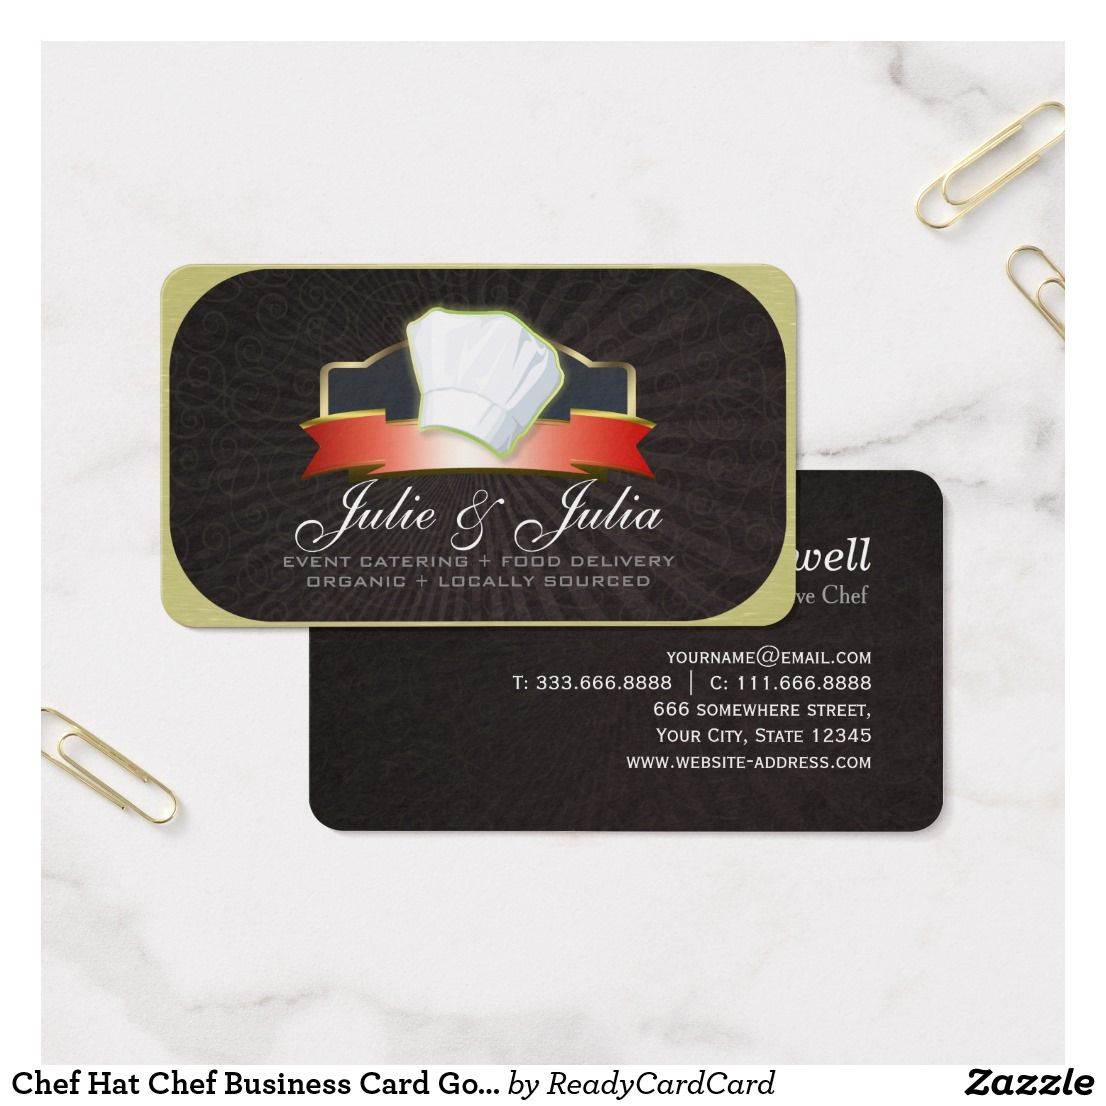 Chef Hat Chef Business Card Gold & Red Ribbon